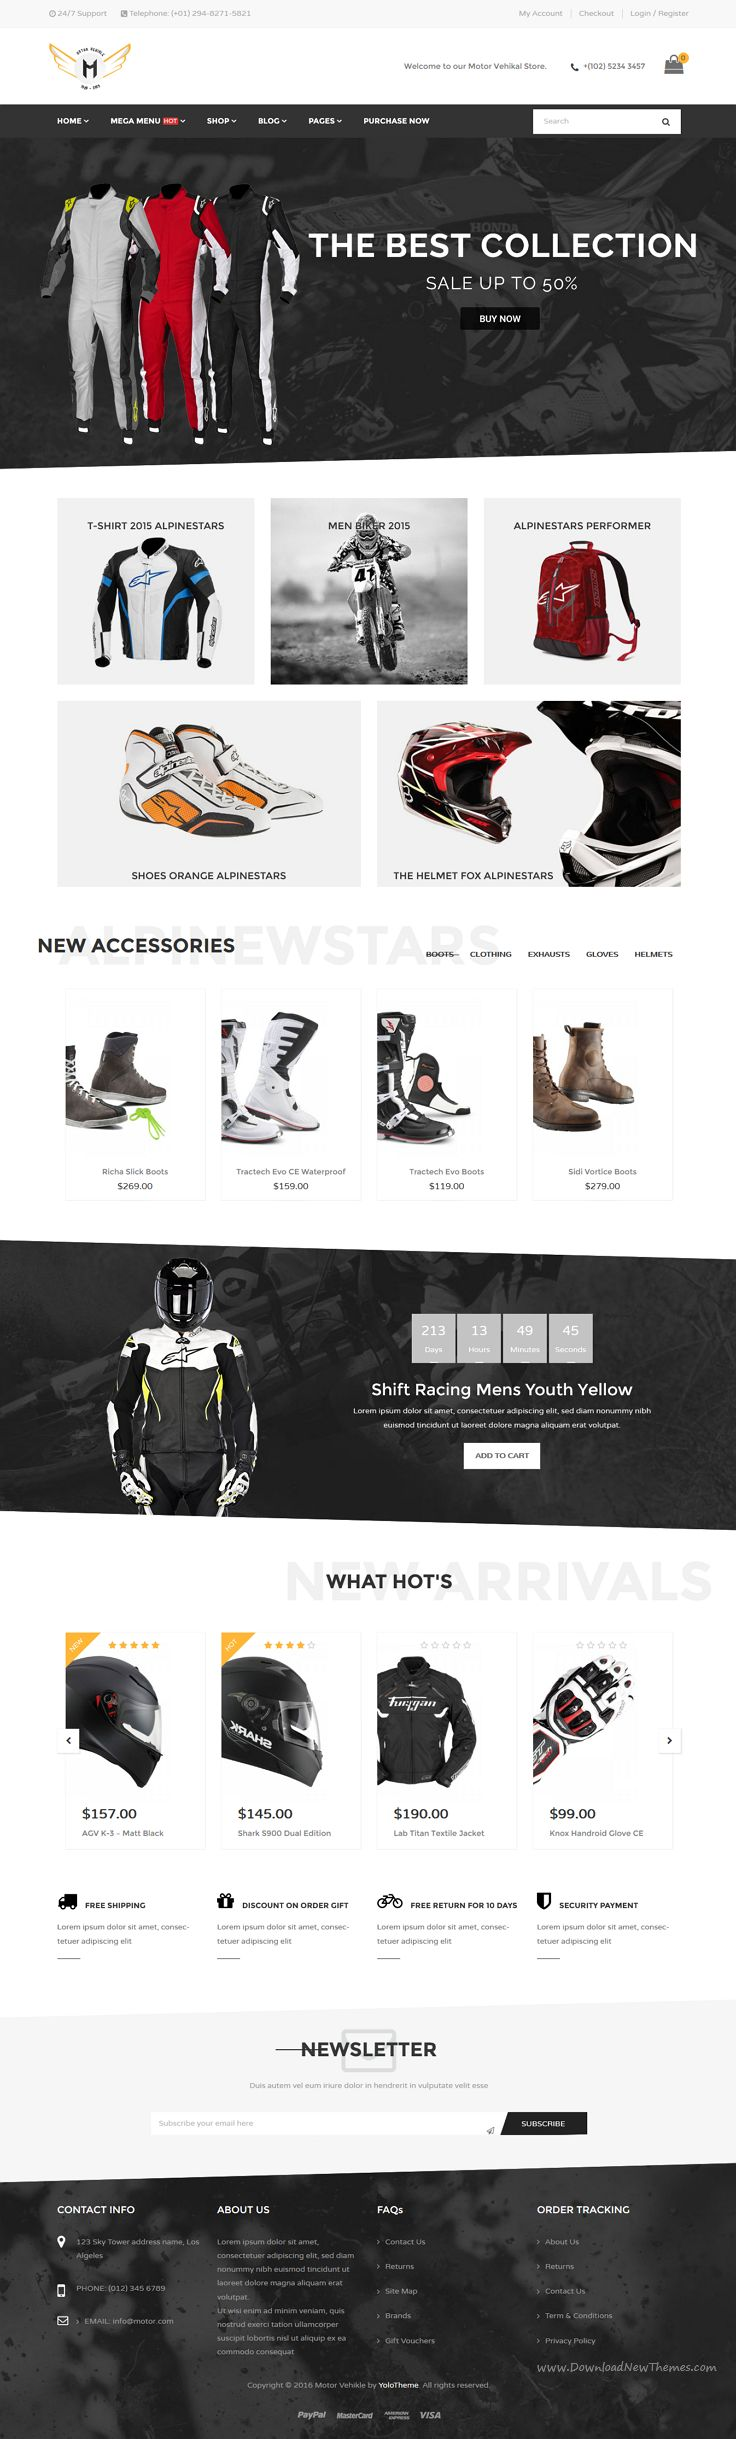 Motor Vehikal is a premium WordPress Theme for motorcycle, car or bicycle online stores website with 10+ Home Pages, 05 product page, 03+ blog page, 09 header styles, 11 footer styles and more Download Now➝ https://themeforest.net/item/motor-vehikal-motorcycle-online-store-wordpress-theme/15895102?ref=Datasata